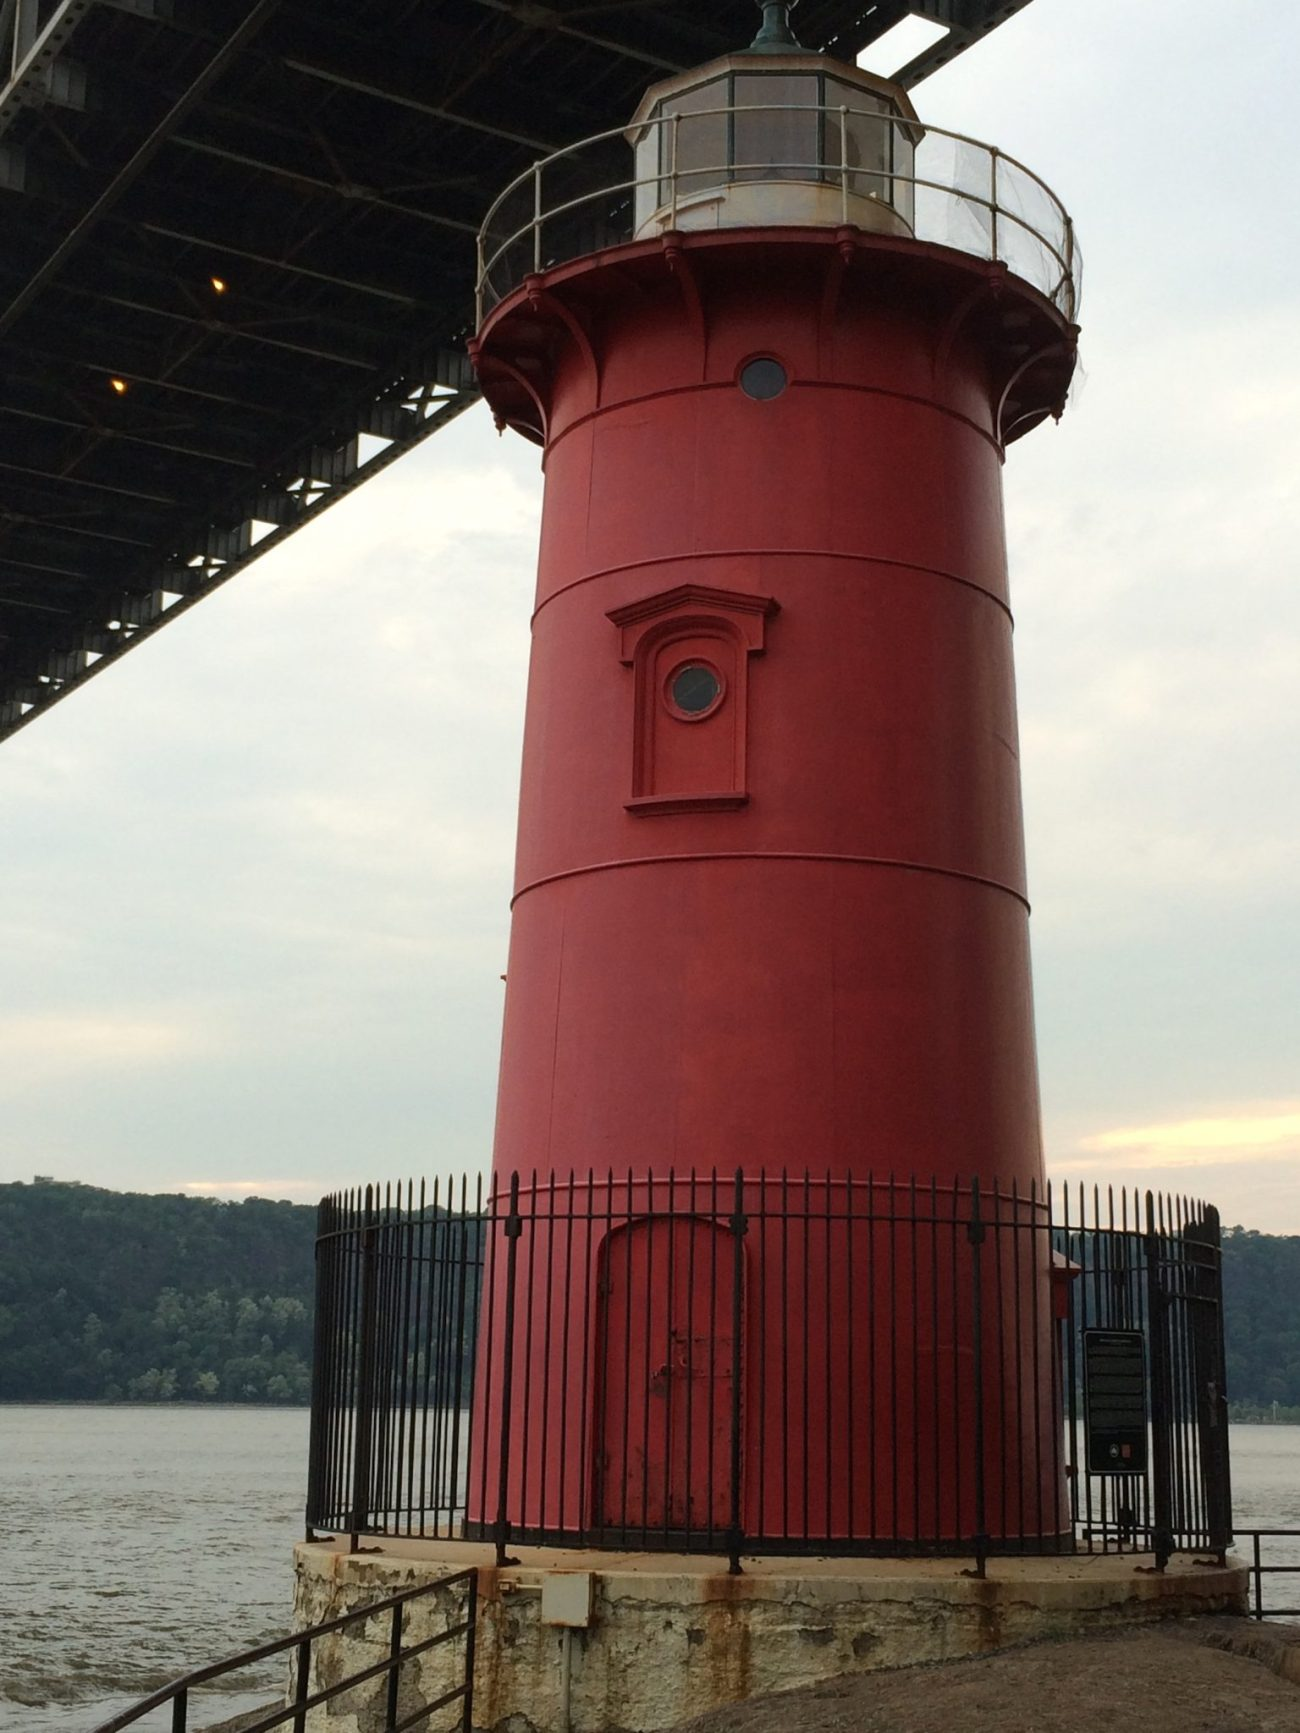 The Little Red Lighthouse On The Hudson River